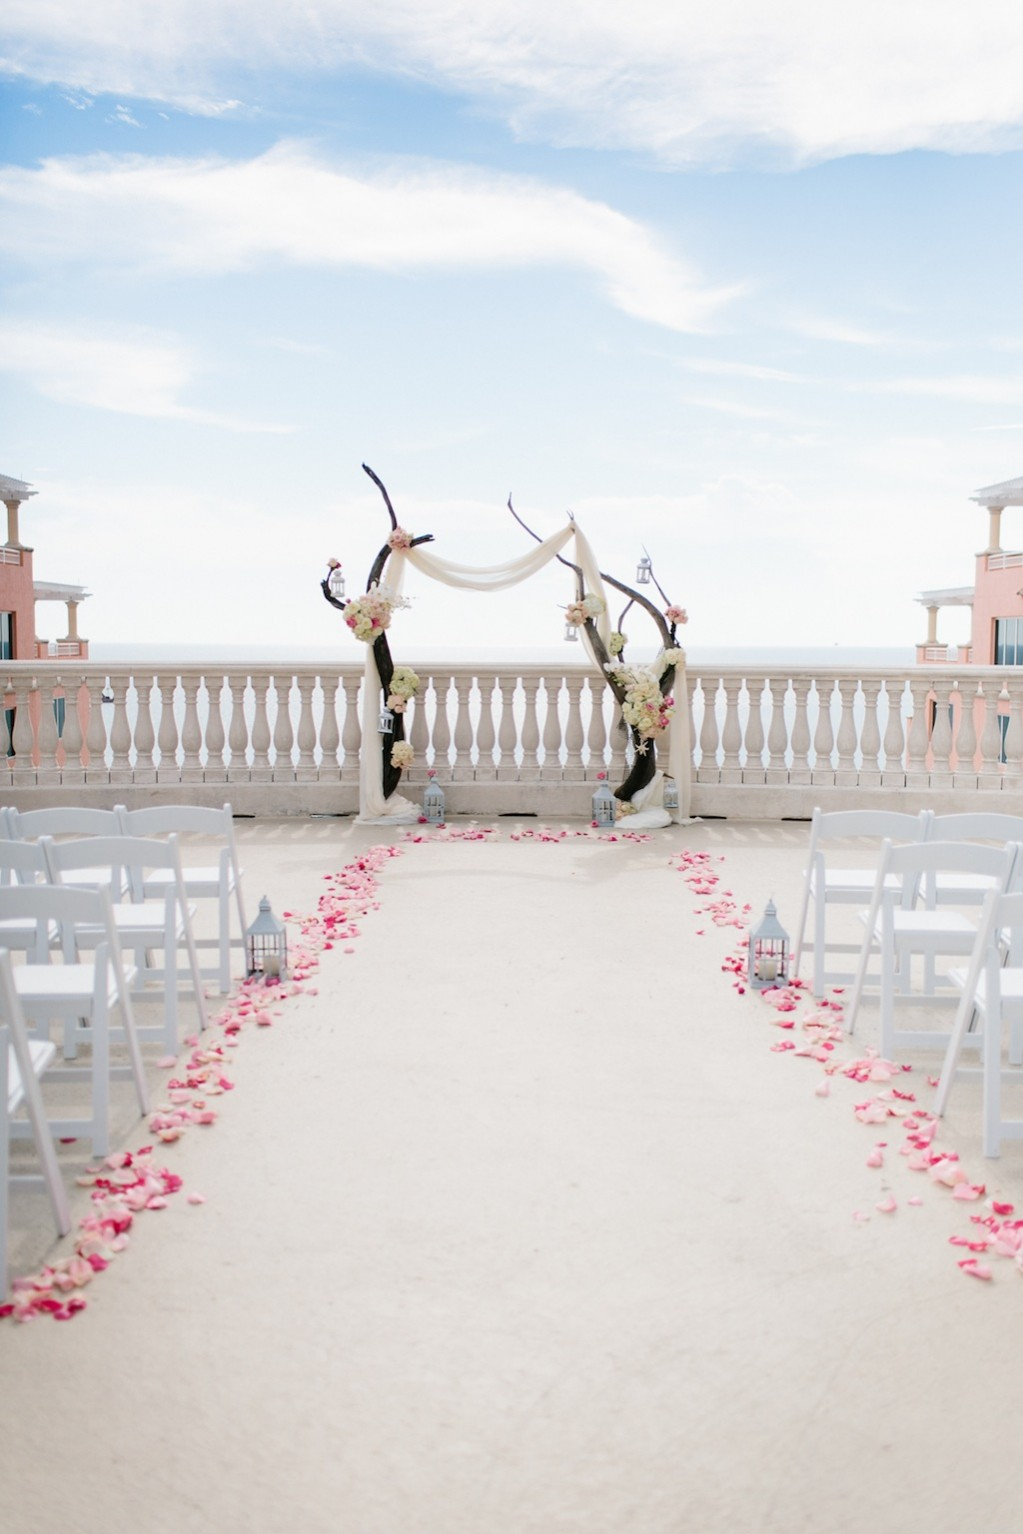 Destination Wedding in Clearwater Beach, FL Pink Flowers and Wood Arch Wedding Ceremony Decor